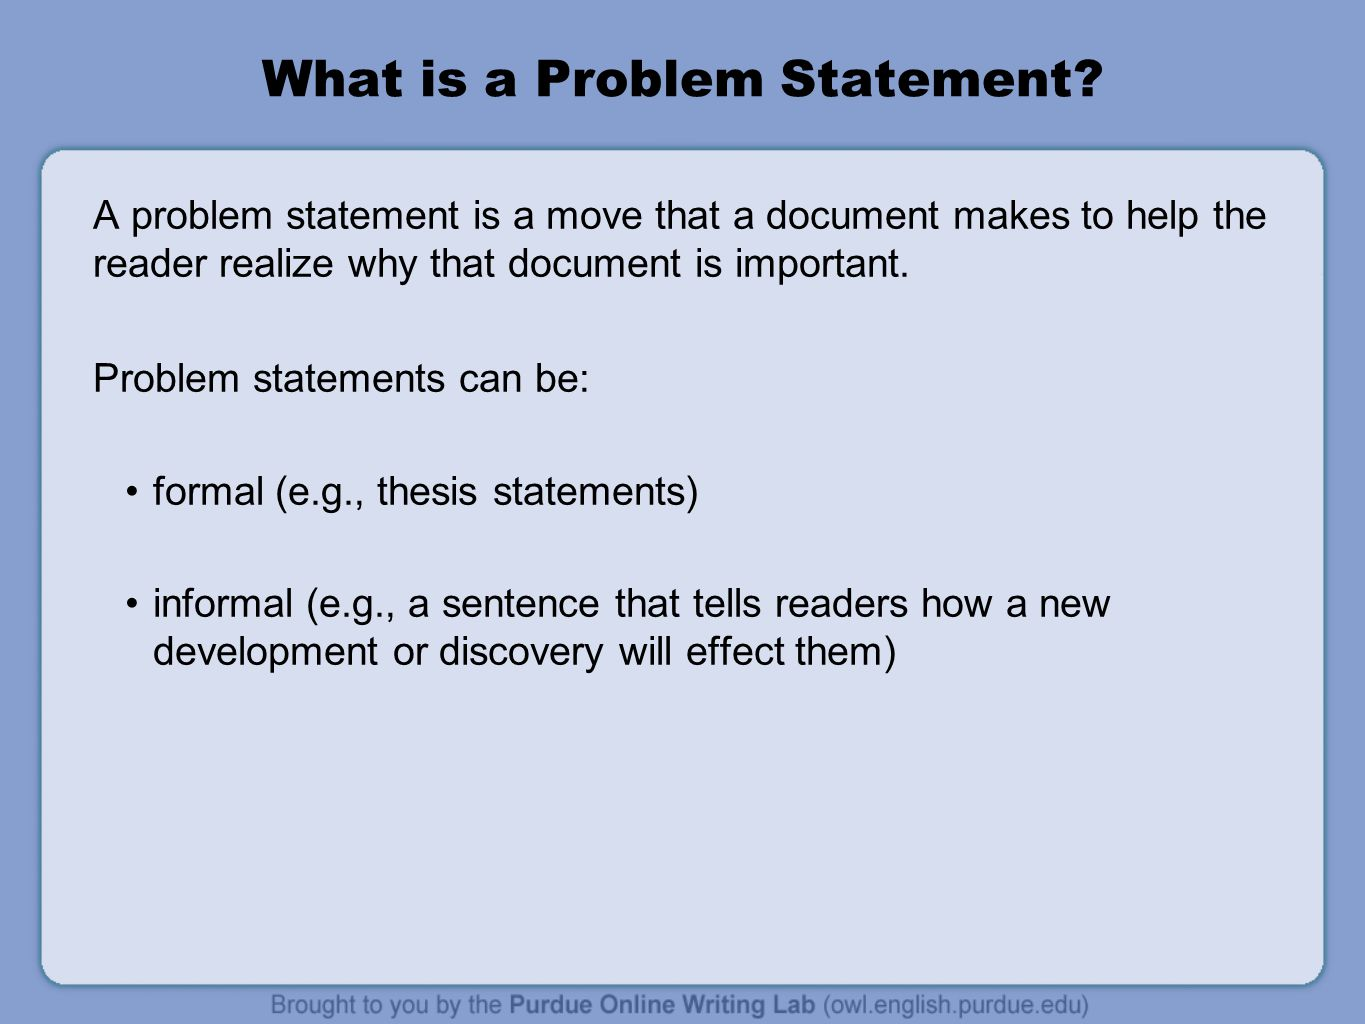 whats a problem statement